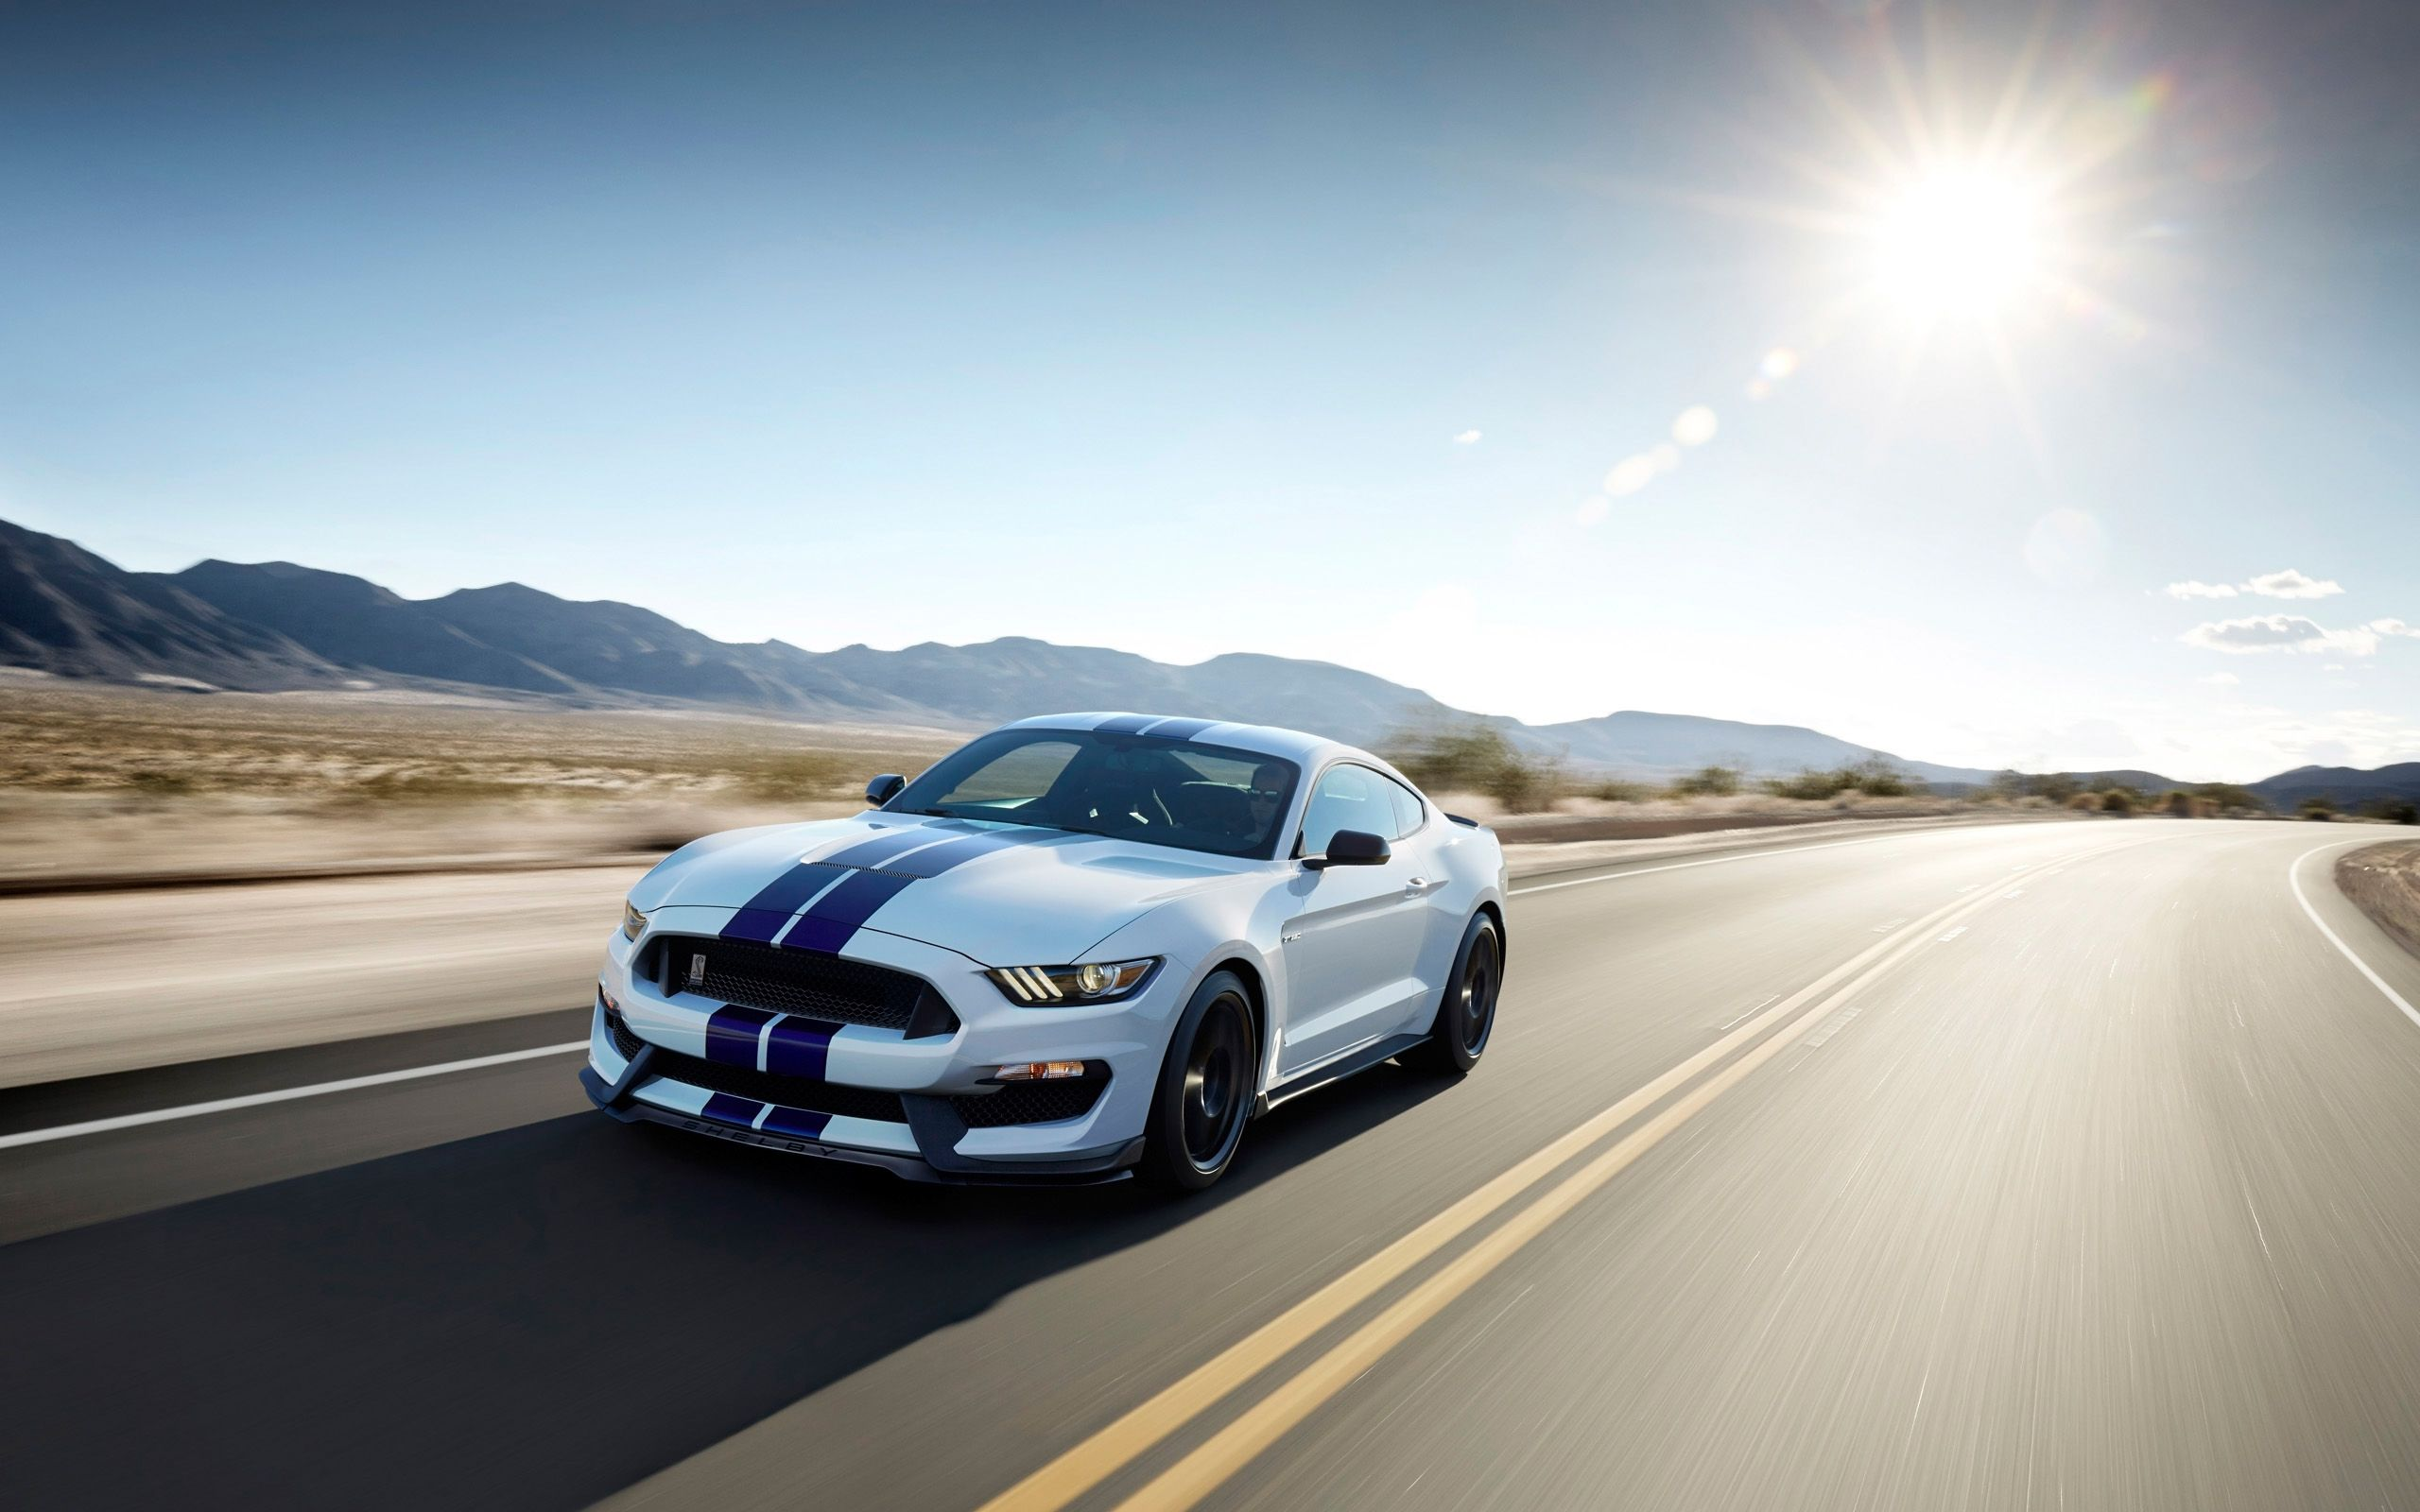 Ford Mustang Gt350 Wallpapers Top Free Ford Mustang Gt350 Backgrounds Wallpaperaccess